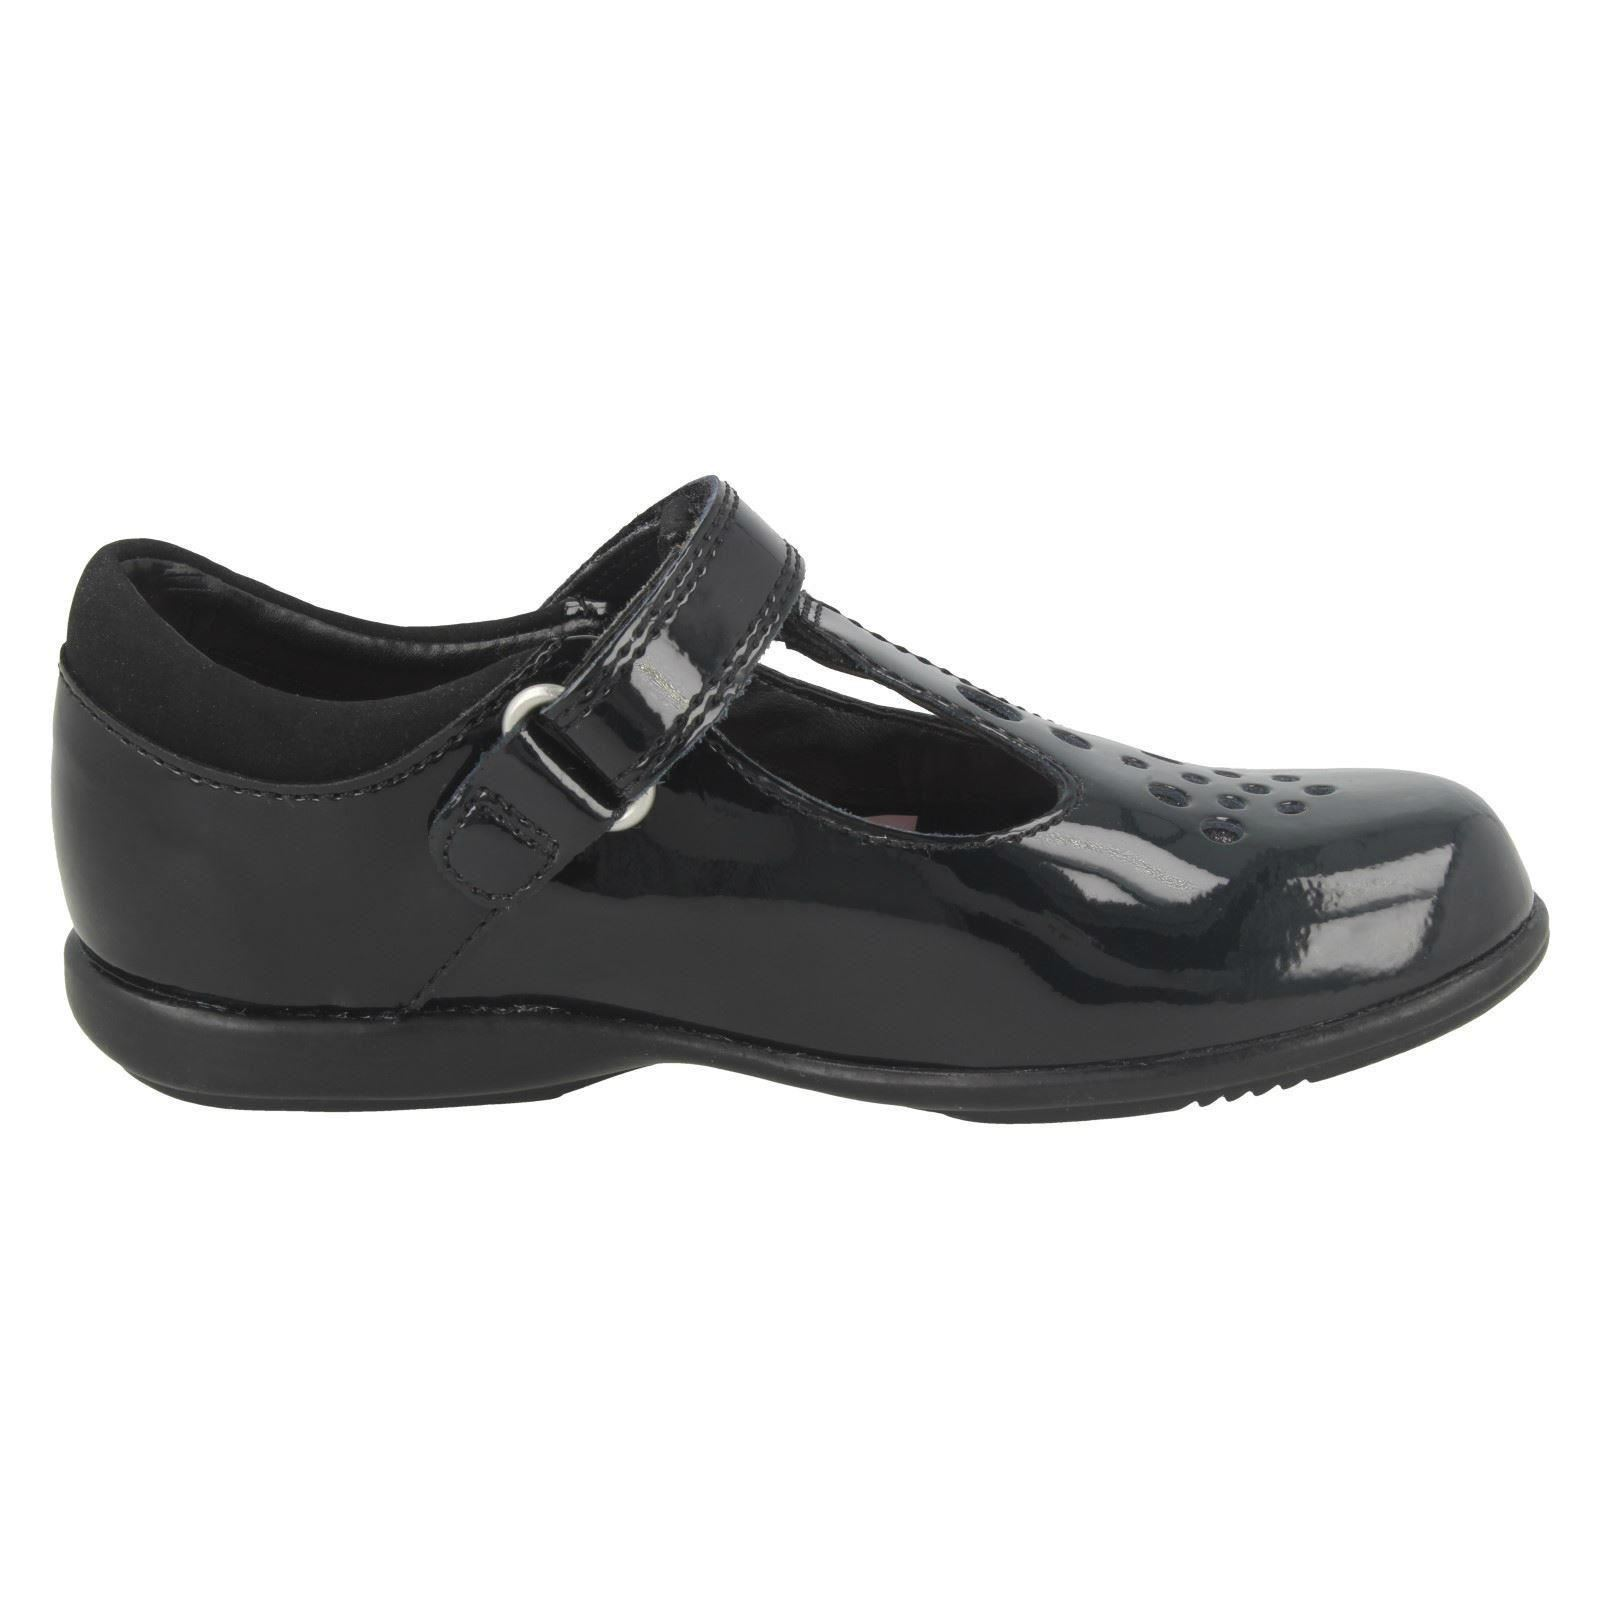 Chicas Clarks Zapatos Escolares con luces intermitentes Trixi PIP